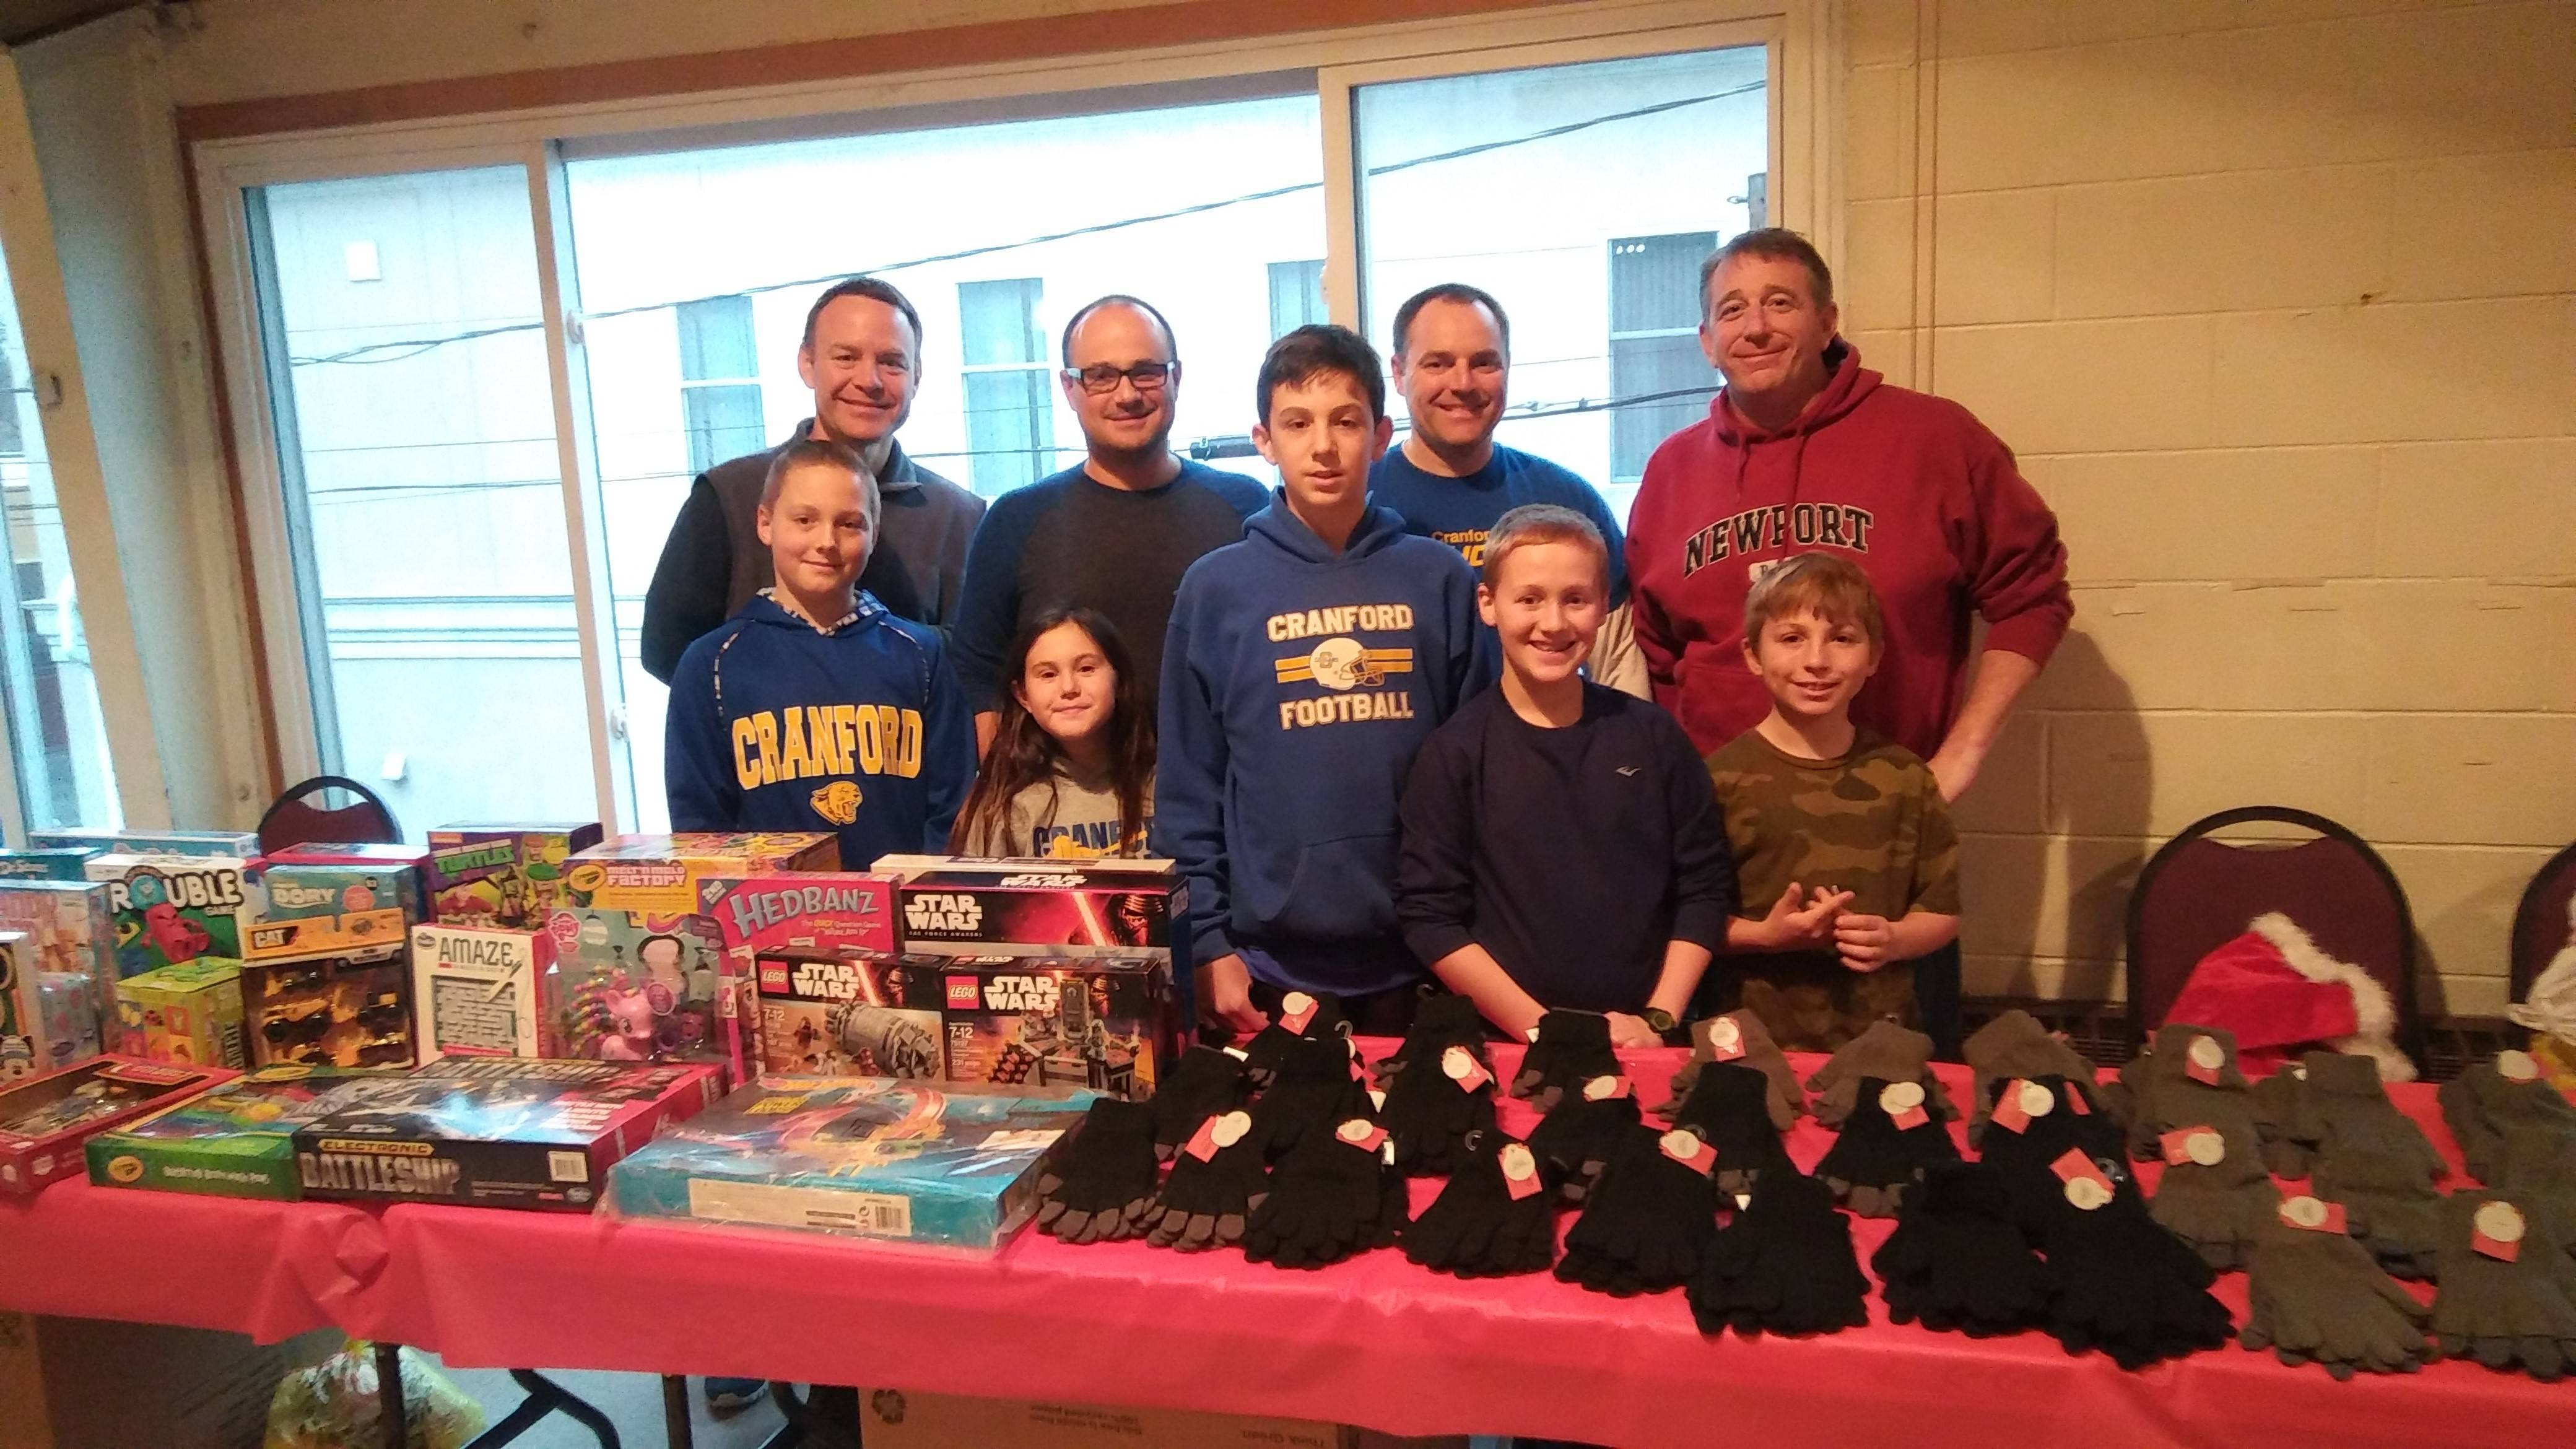 aae182f19e8604ba908a_The_Cranford_Jaycees_donated_a_variety_of_toys_and_clothing_for_the_guests.jpg